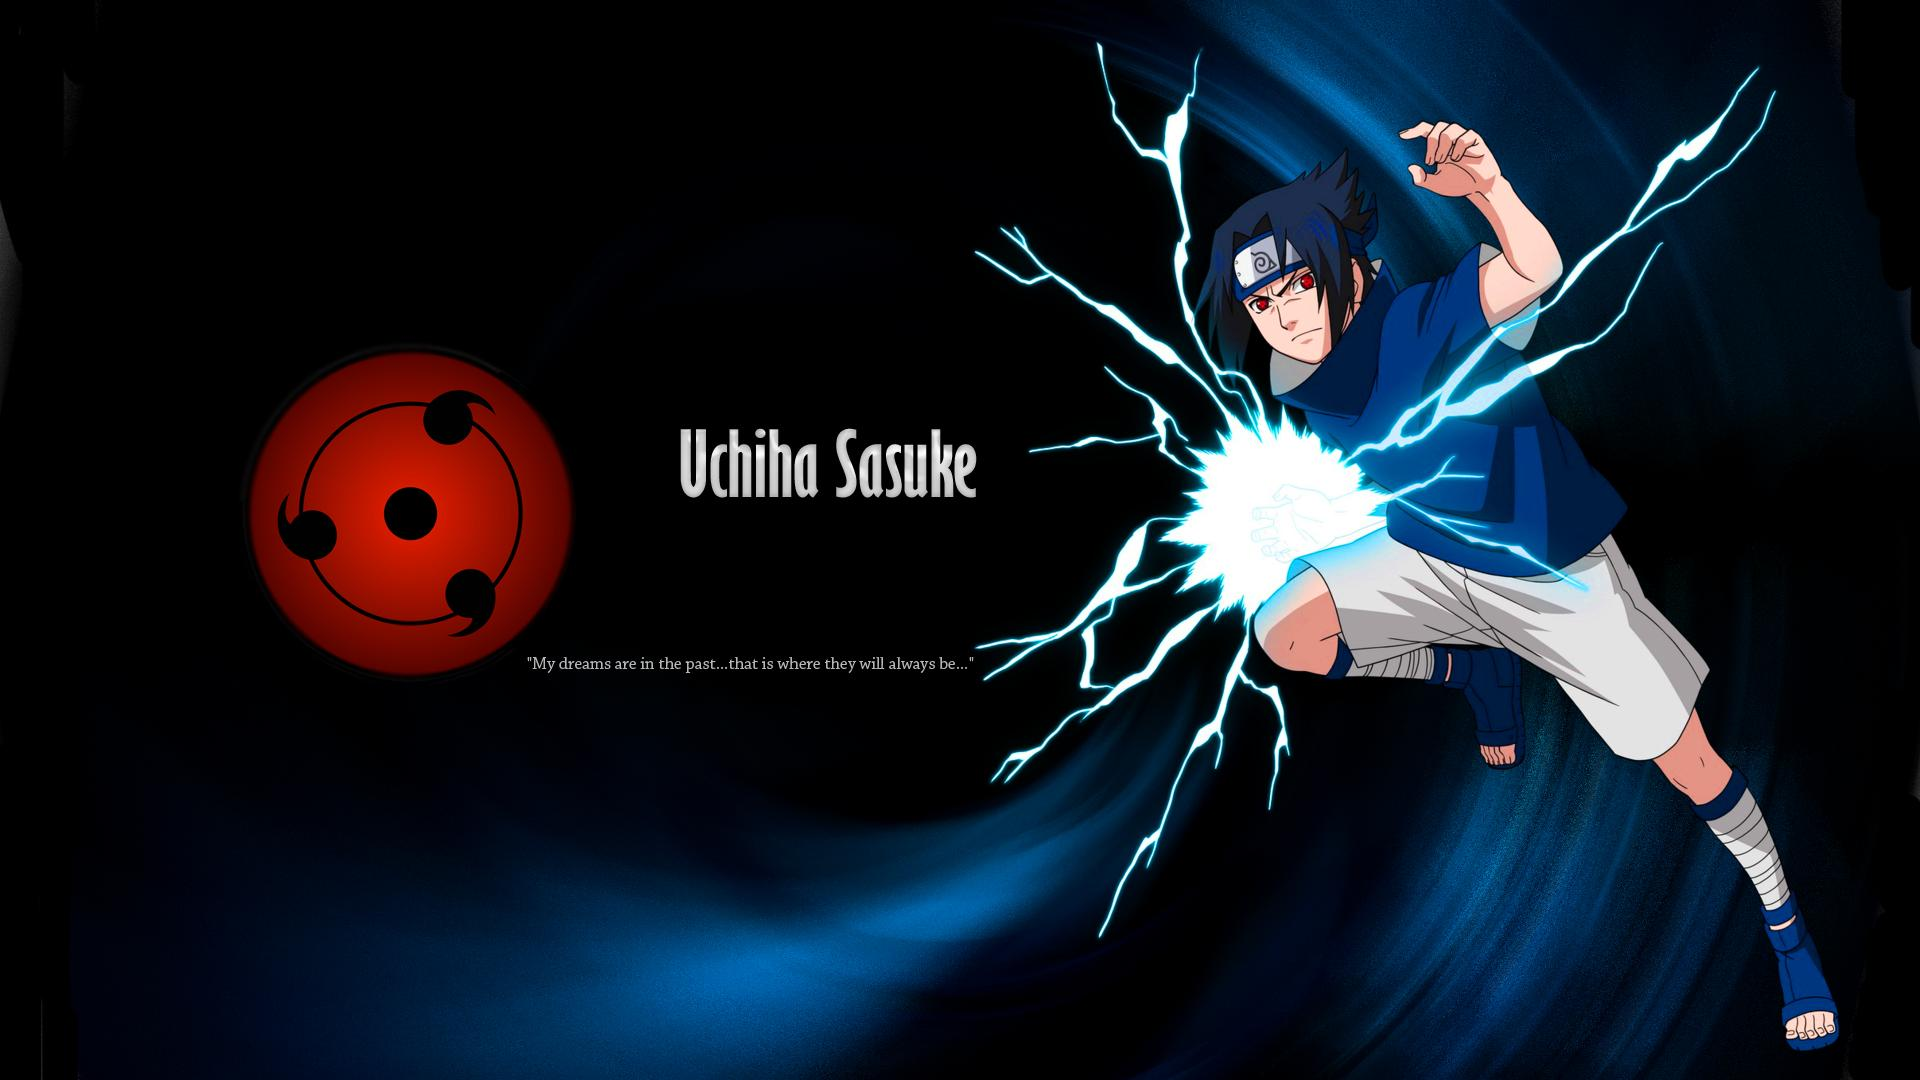 sasuke uchiha shippuden wallpaper hd #9